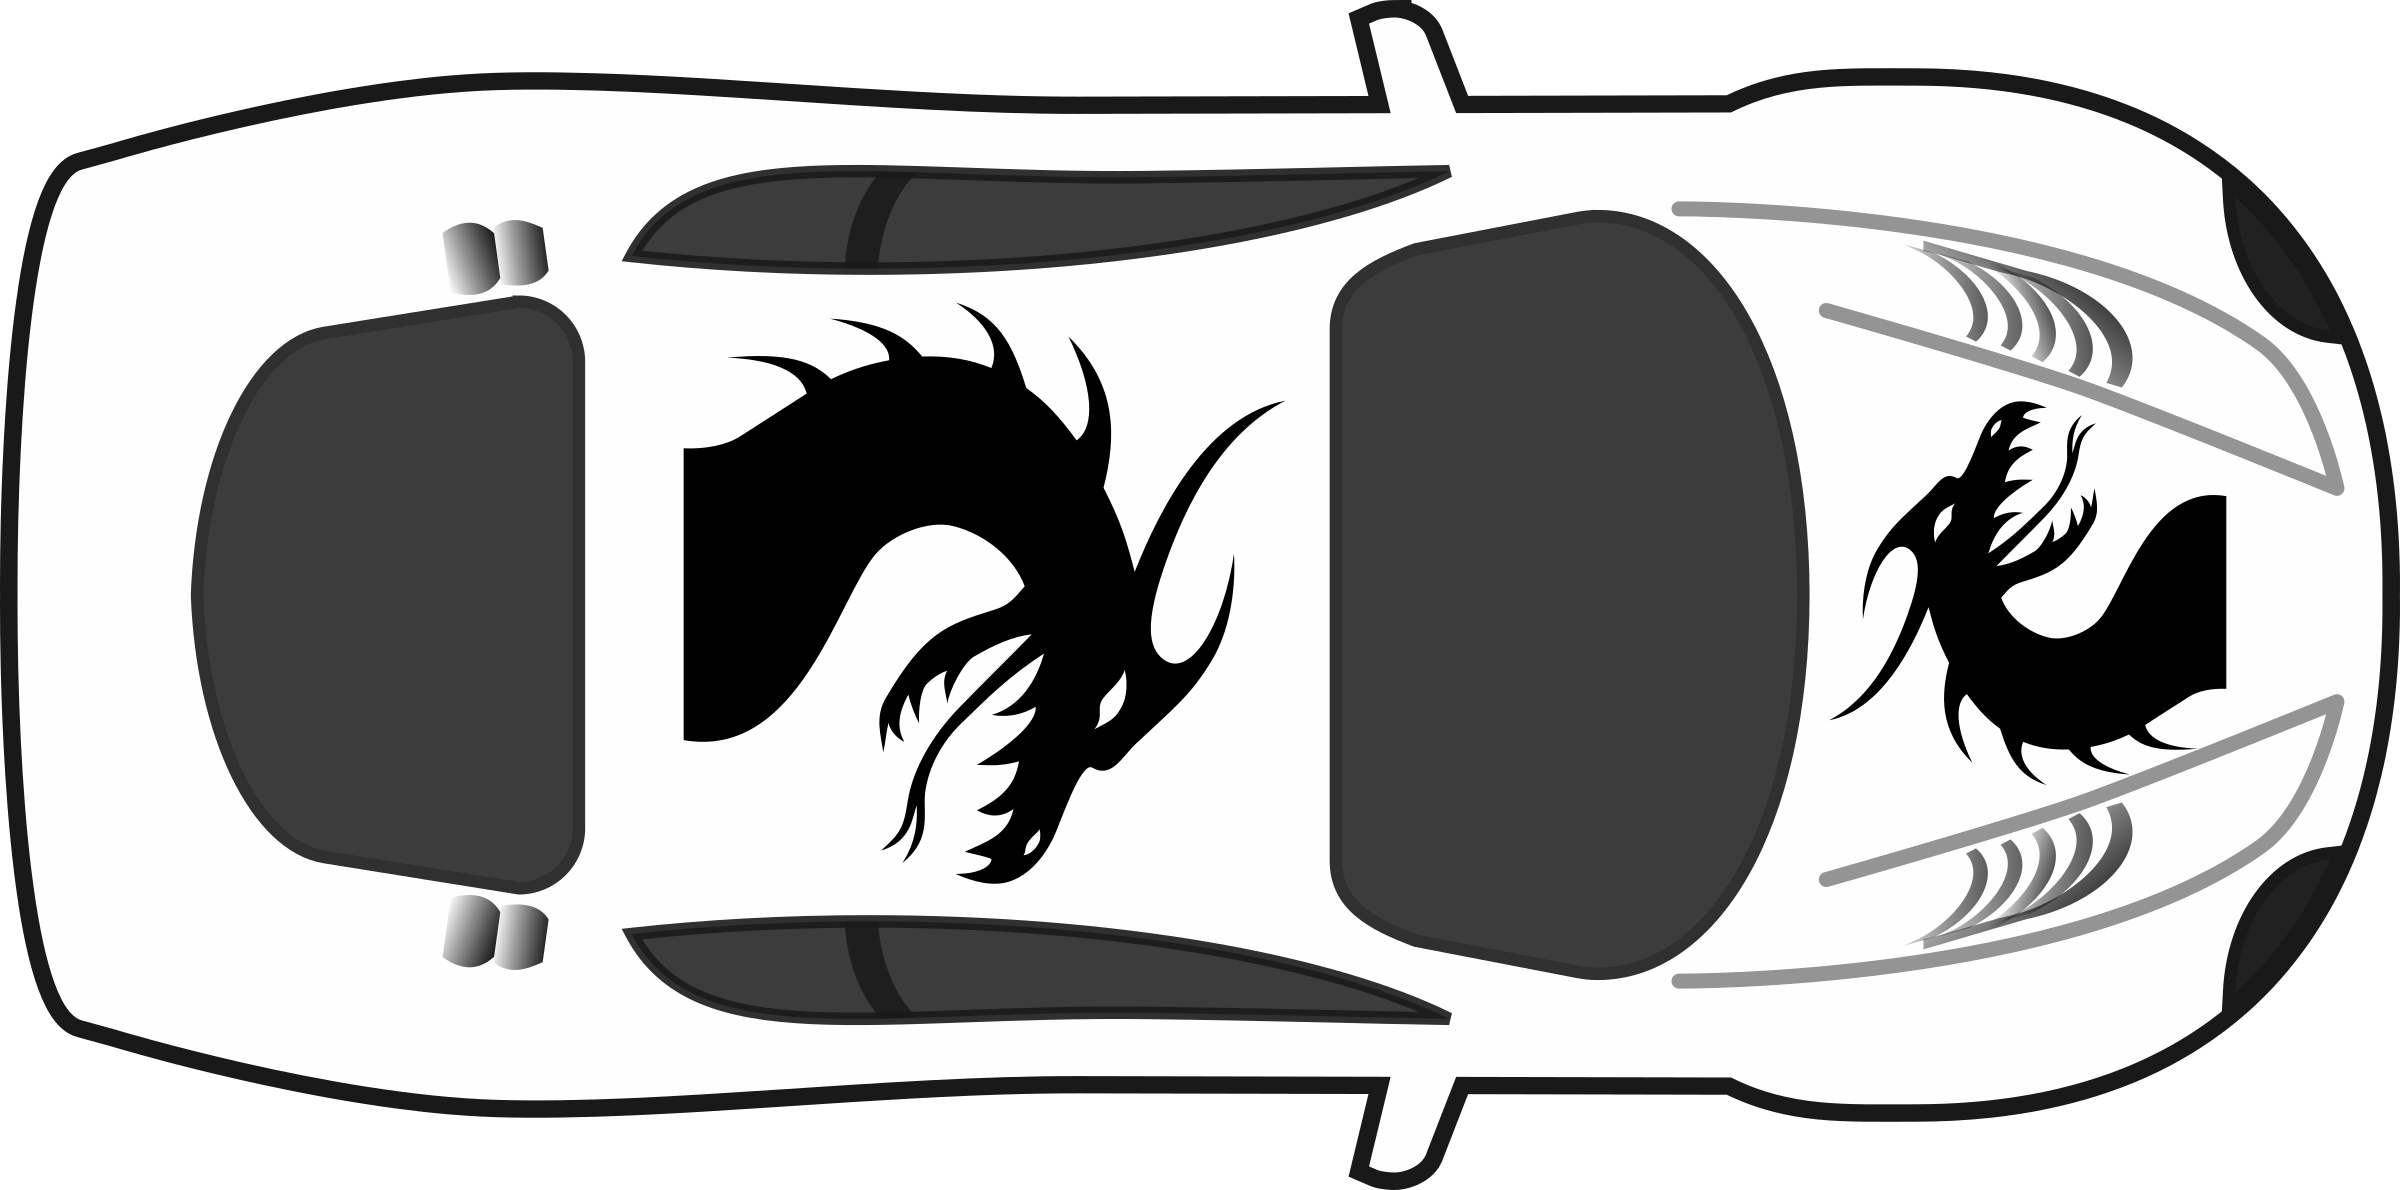 Black and white race car clipart royalty free download Clipart - Dragon Paint Job on Car Top View royalty free download